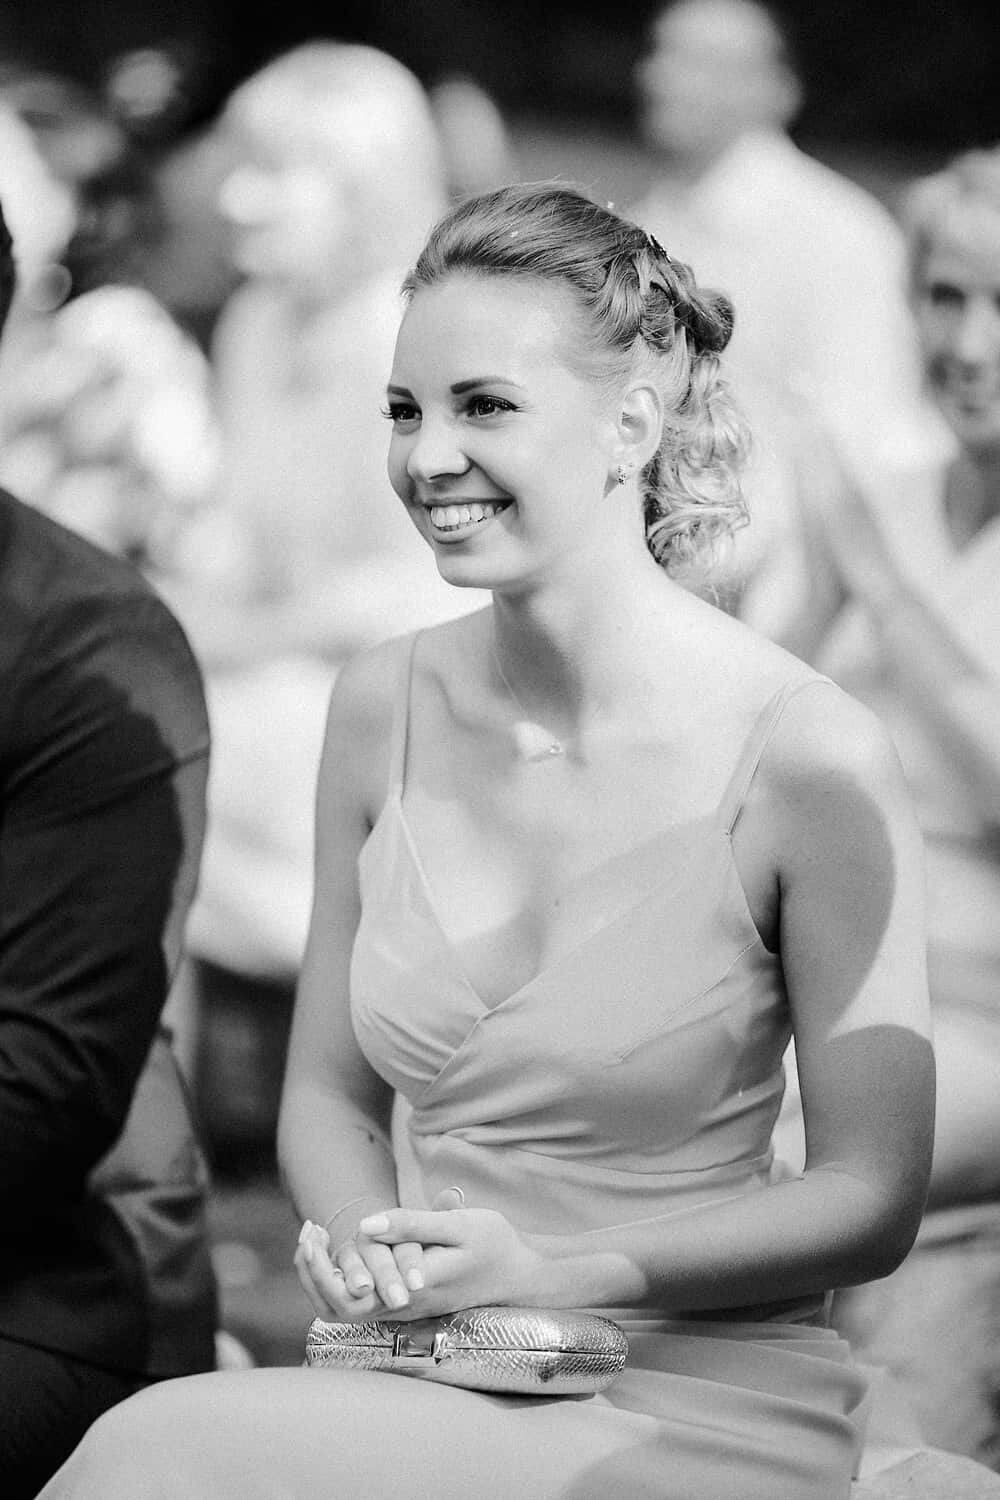 Podmoskovniye-vechera-wedding-We-production-About-you-decor-by-Julia-Kaptelova-Photography-022